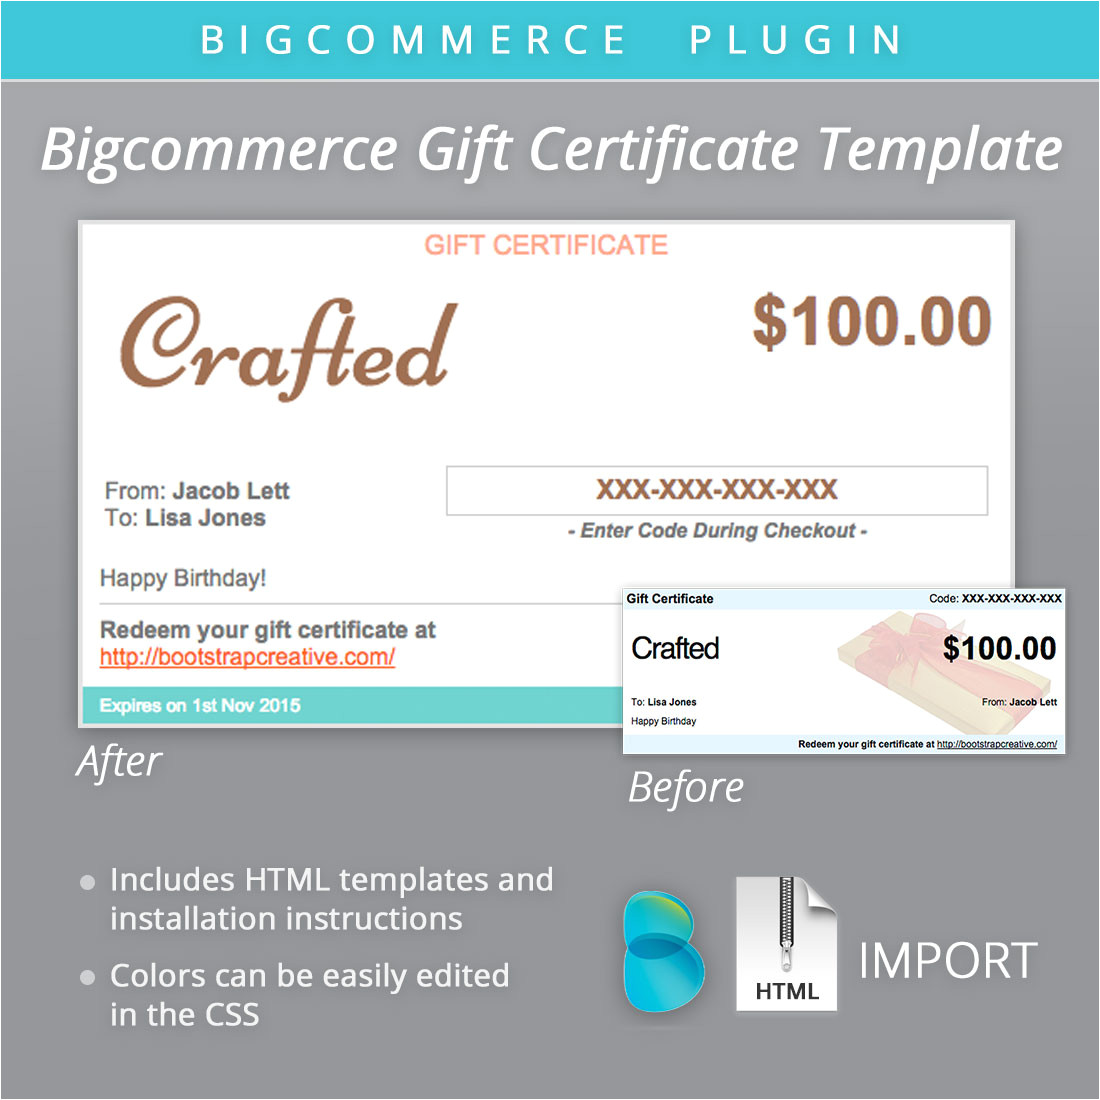 Big Commerce Templates Bigcommerce Gift Certificate Email Email Templates On